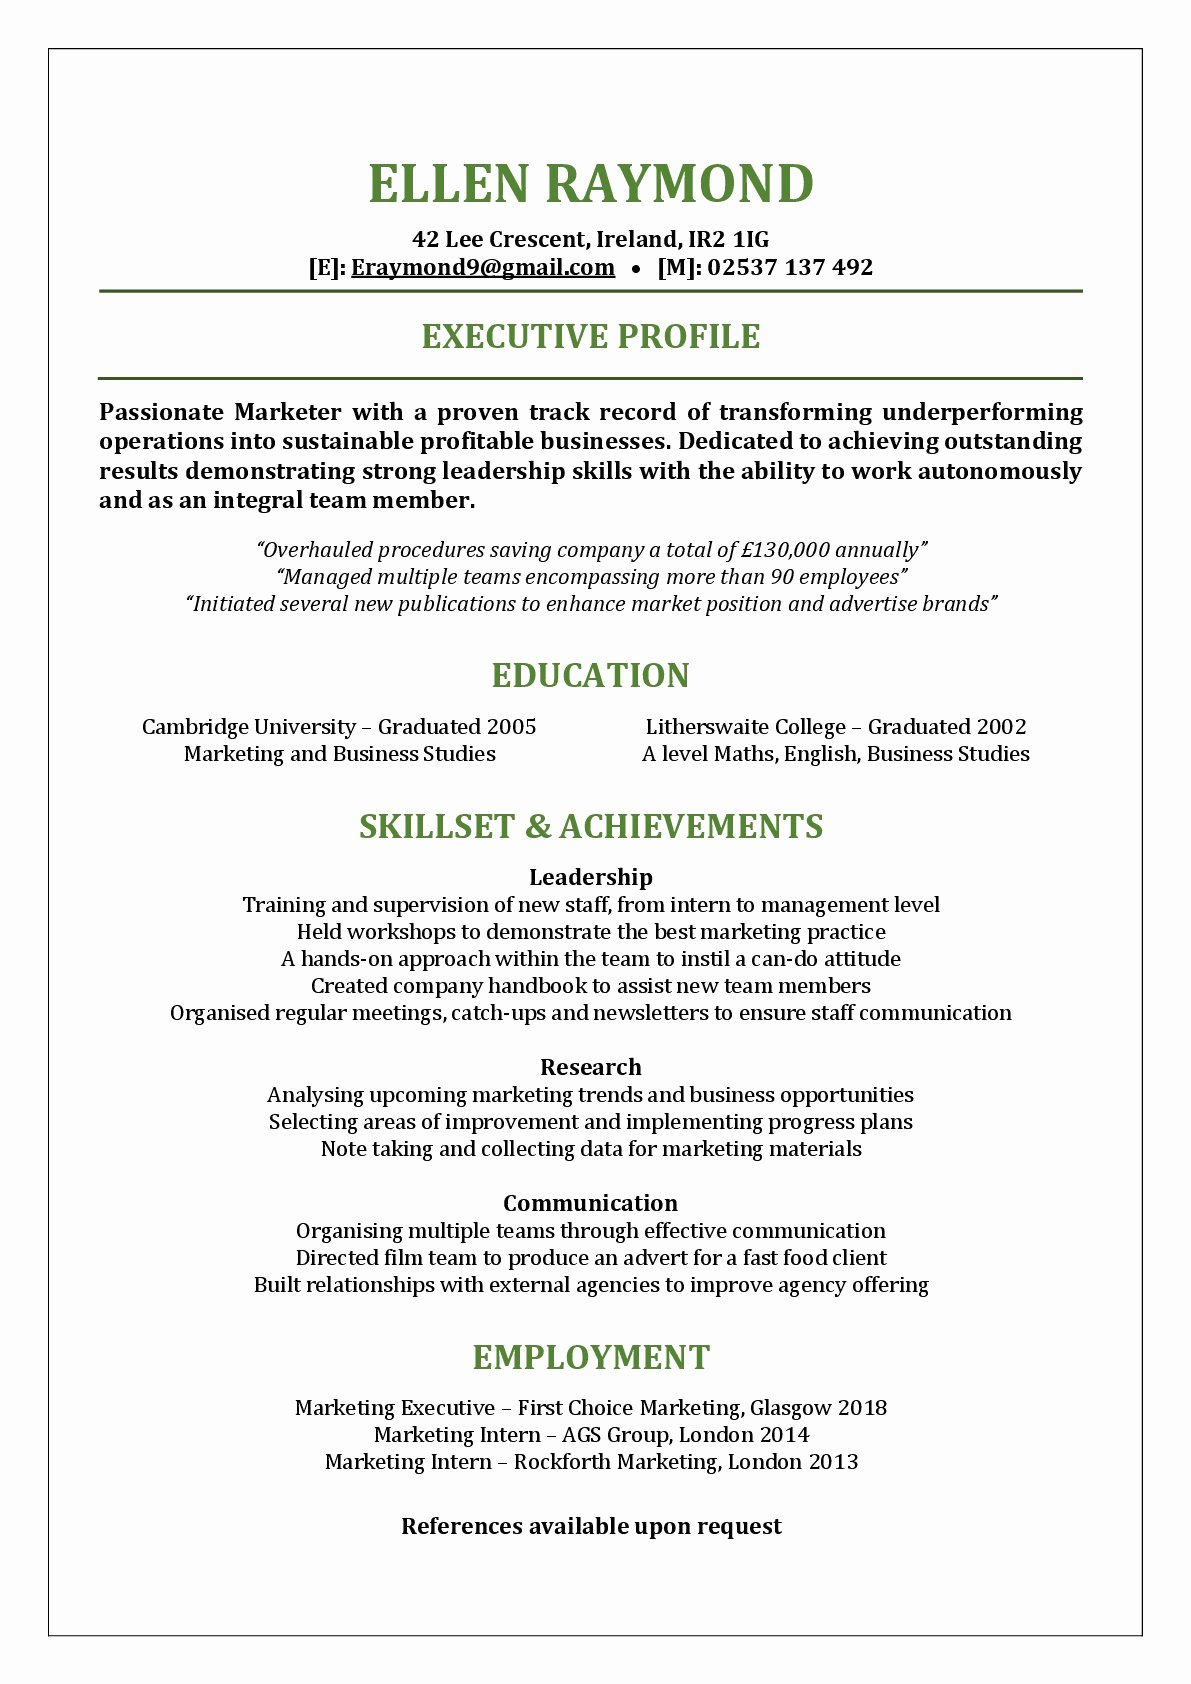 Functional Resume Template Word Awesome Functional Resume Template – Got something to Hide